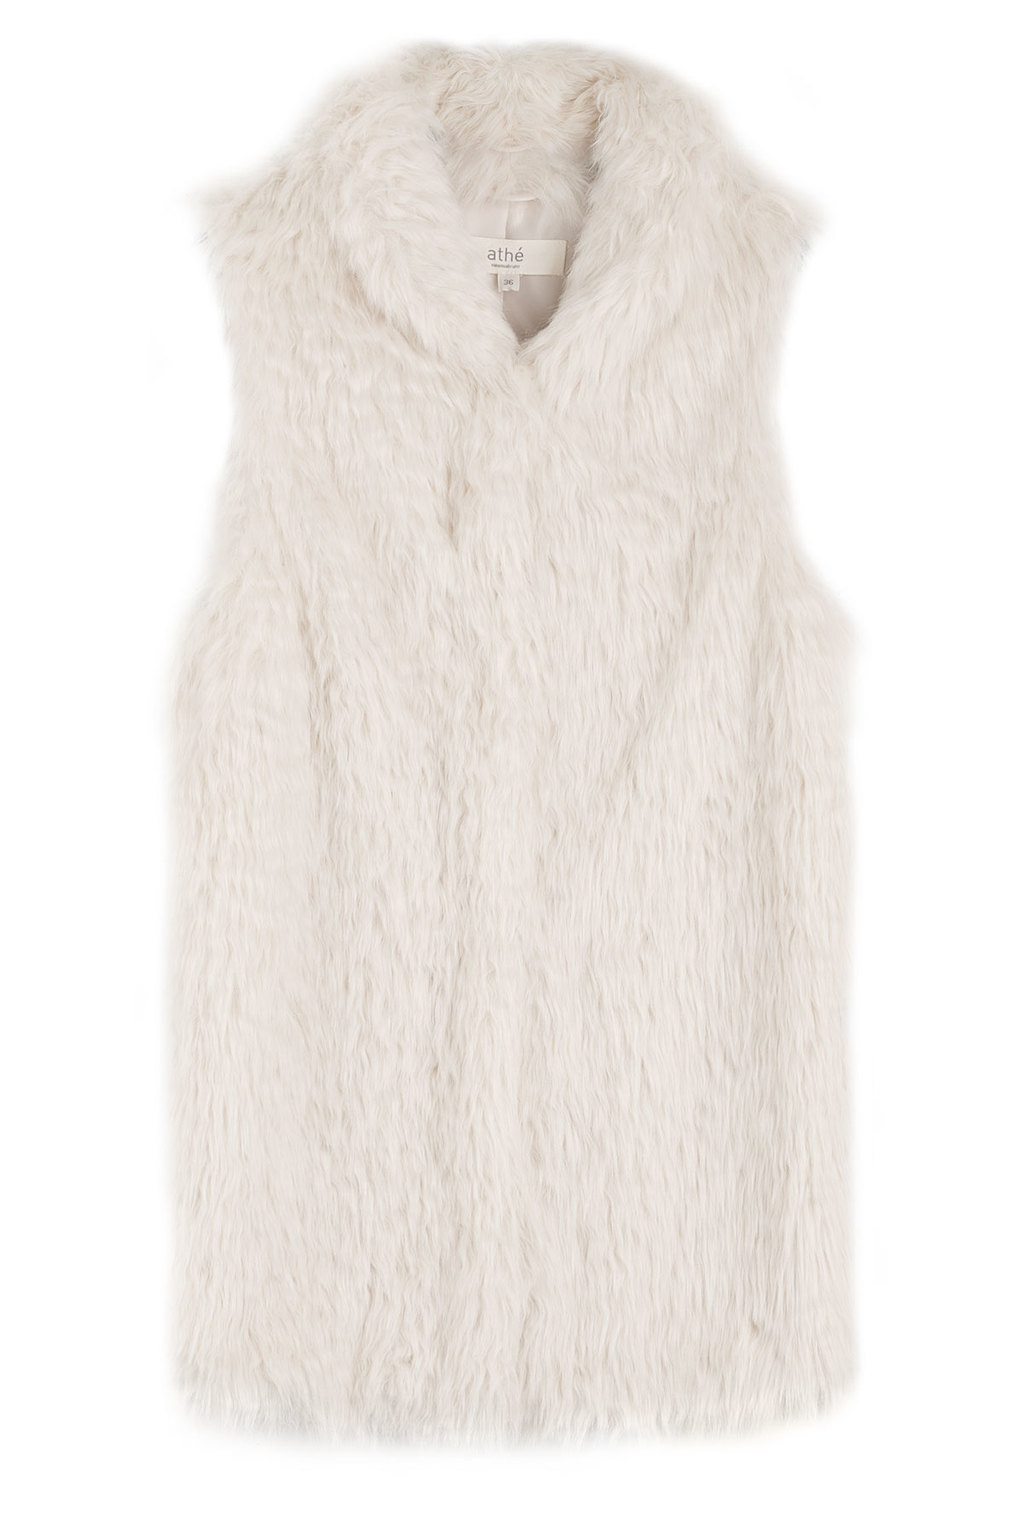 Faux Shearling Vest Beige - pattern: plain; sleeve style: sleeveless; style: gilet; predominant colour: white; occasions: casual, creative work; length: standard; fit: straight cut (boxy); fibres: acrylic - 100%; collar: shirt collar/peter pan/zip with opening; sleeve length: sleeveless; texture group: fur; collar break: medium; pattern type: fabric; season: a/w 2015; wardrobe: highlight